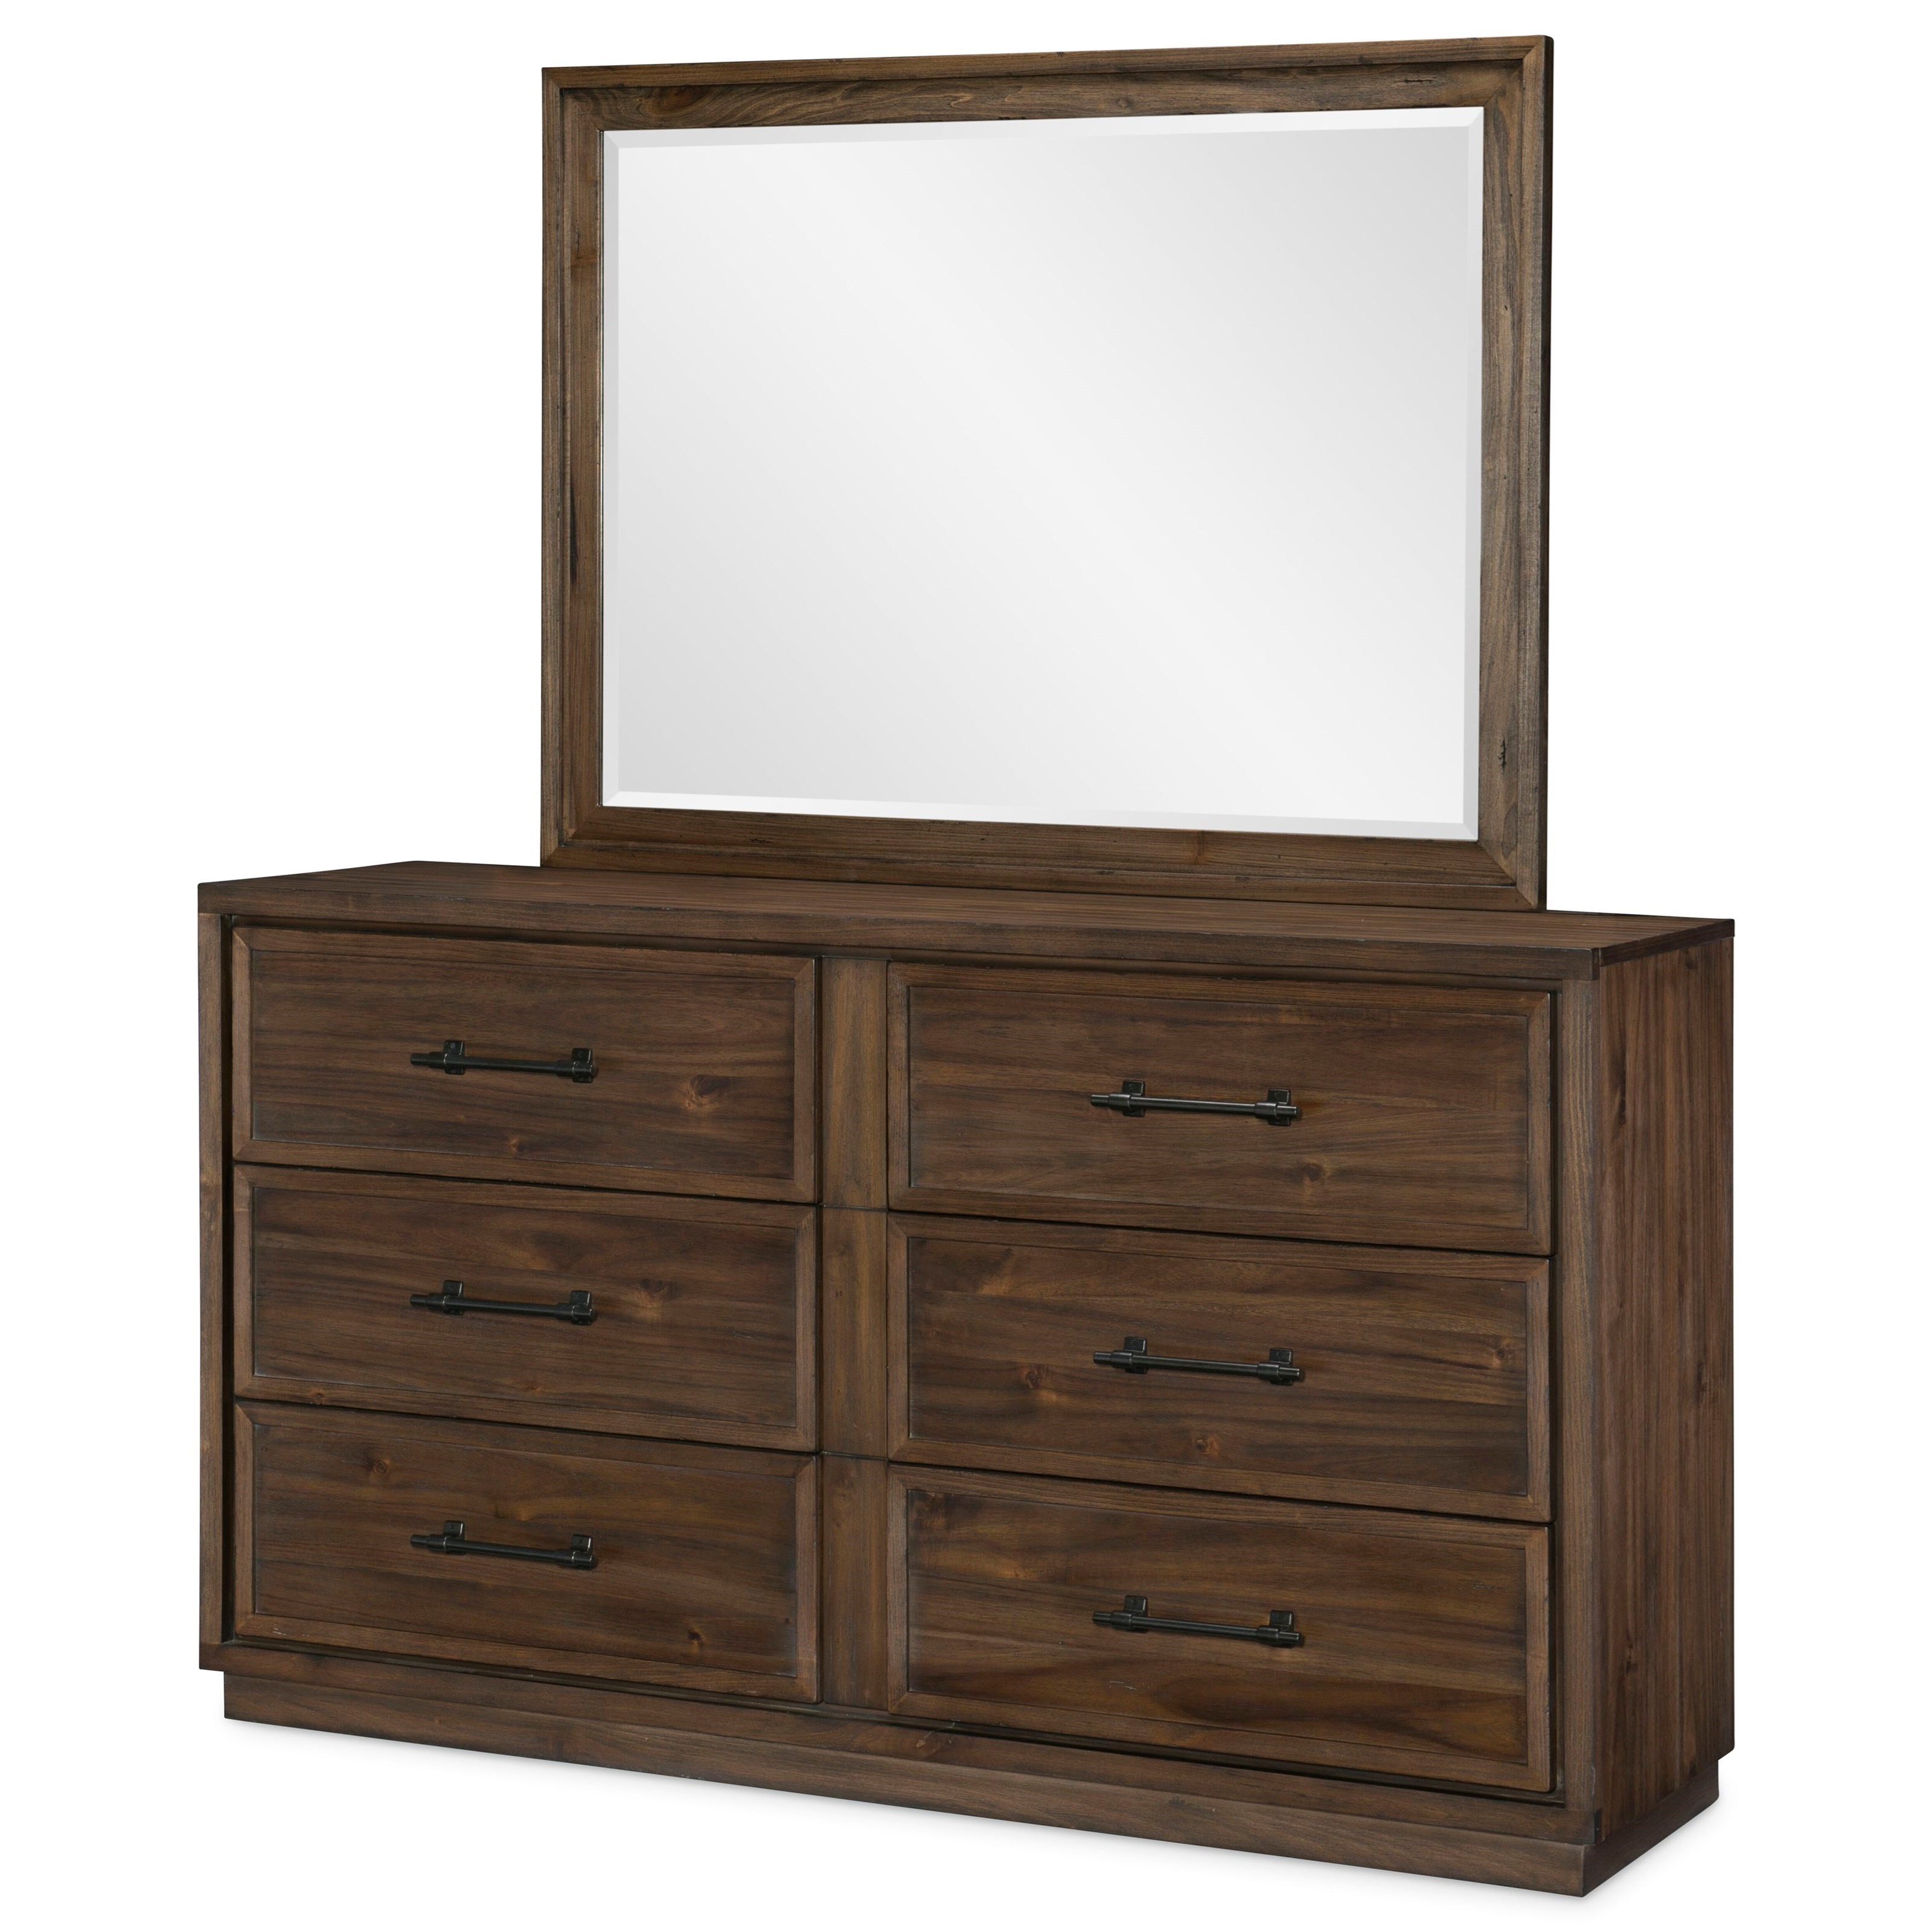 Lumberton Dresser and Mirror Set by Legacy Classic at Darvin Furniture